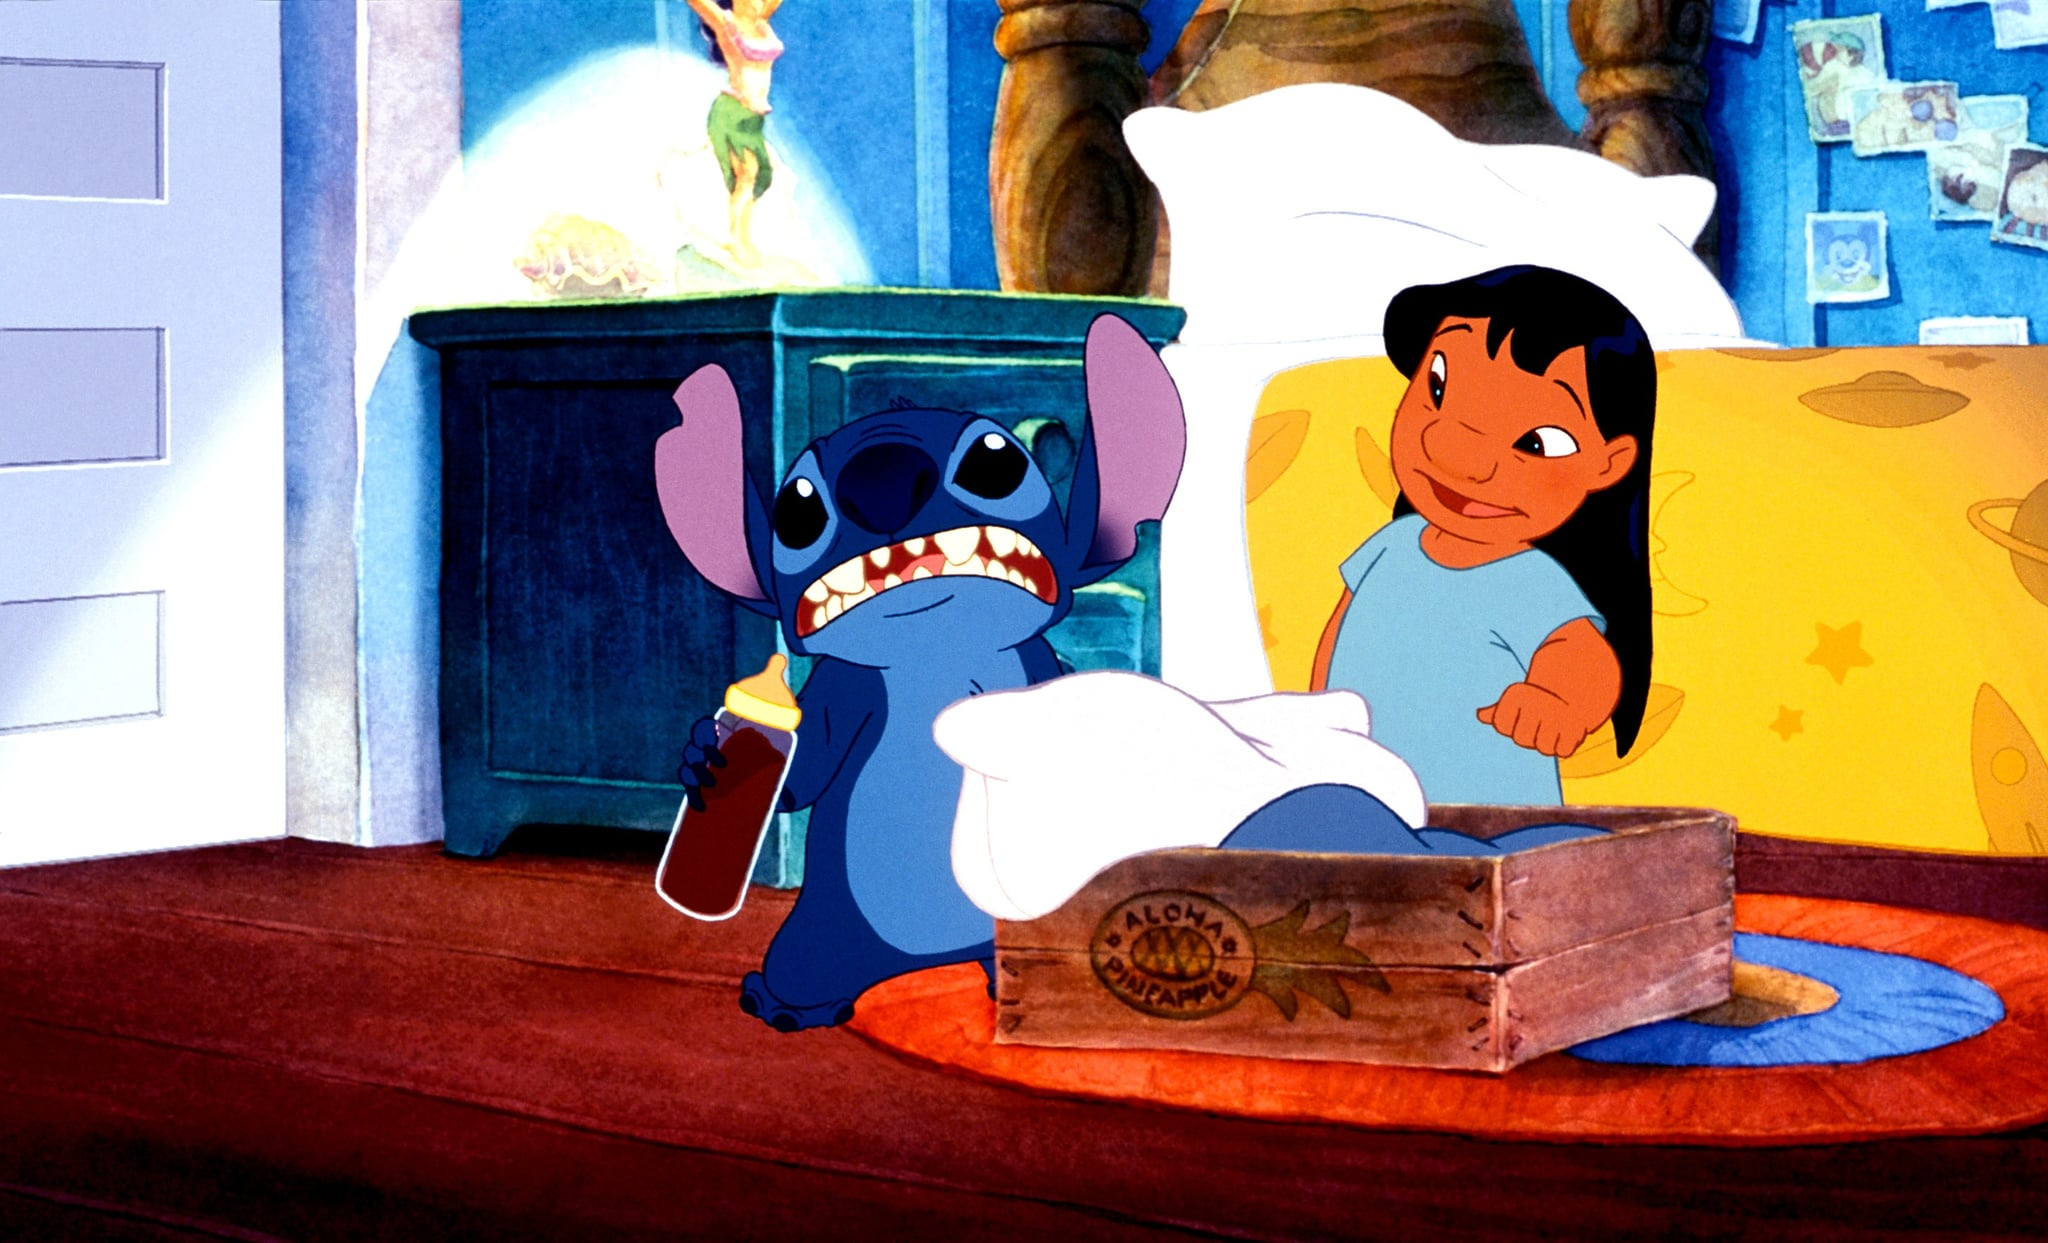 Lilo And Stitch 2002 The Ultimate List Of Animated Disney Movies You Need To Watch With Your Kids Popsugar Family Photo 40